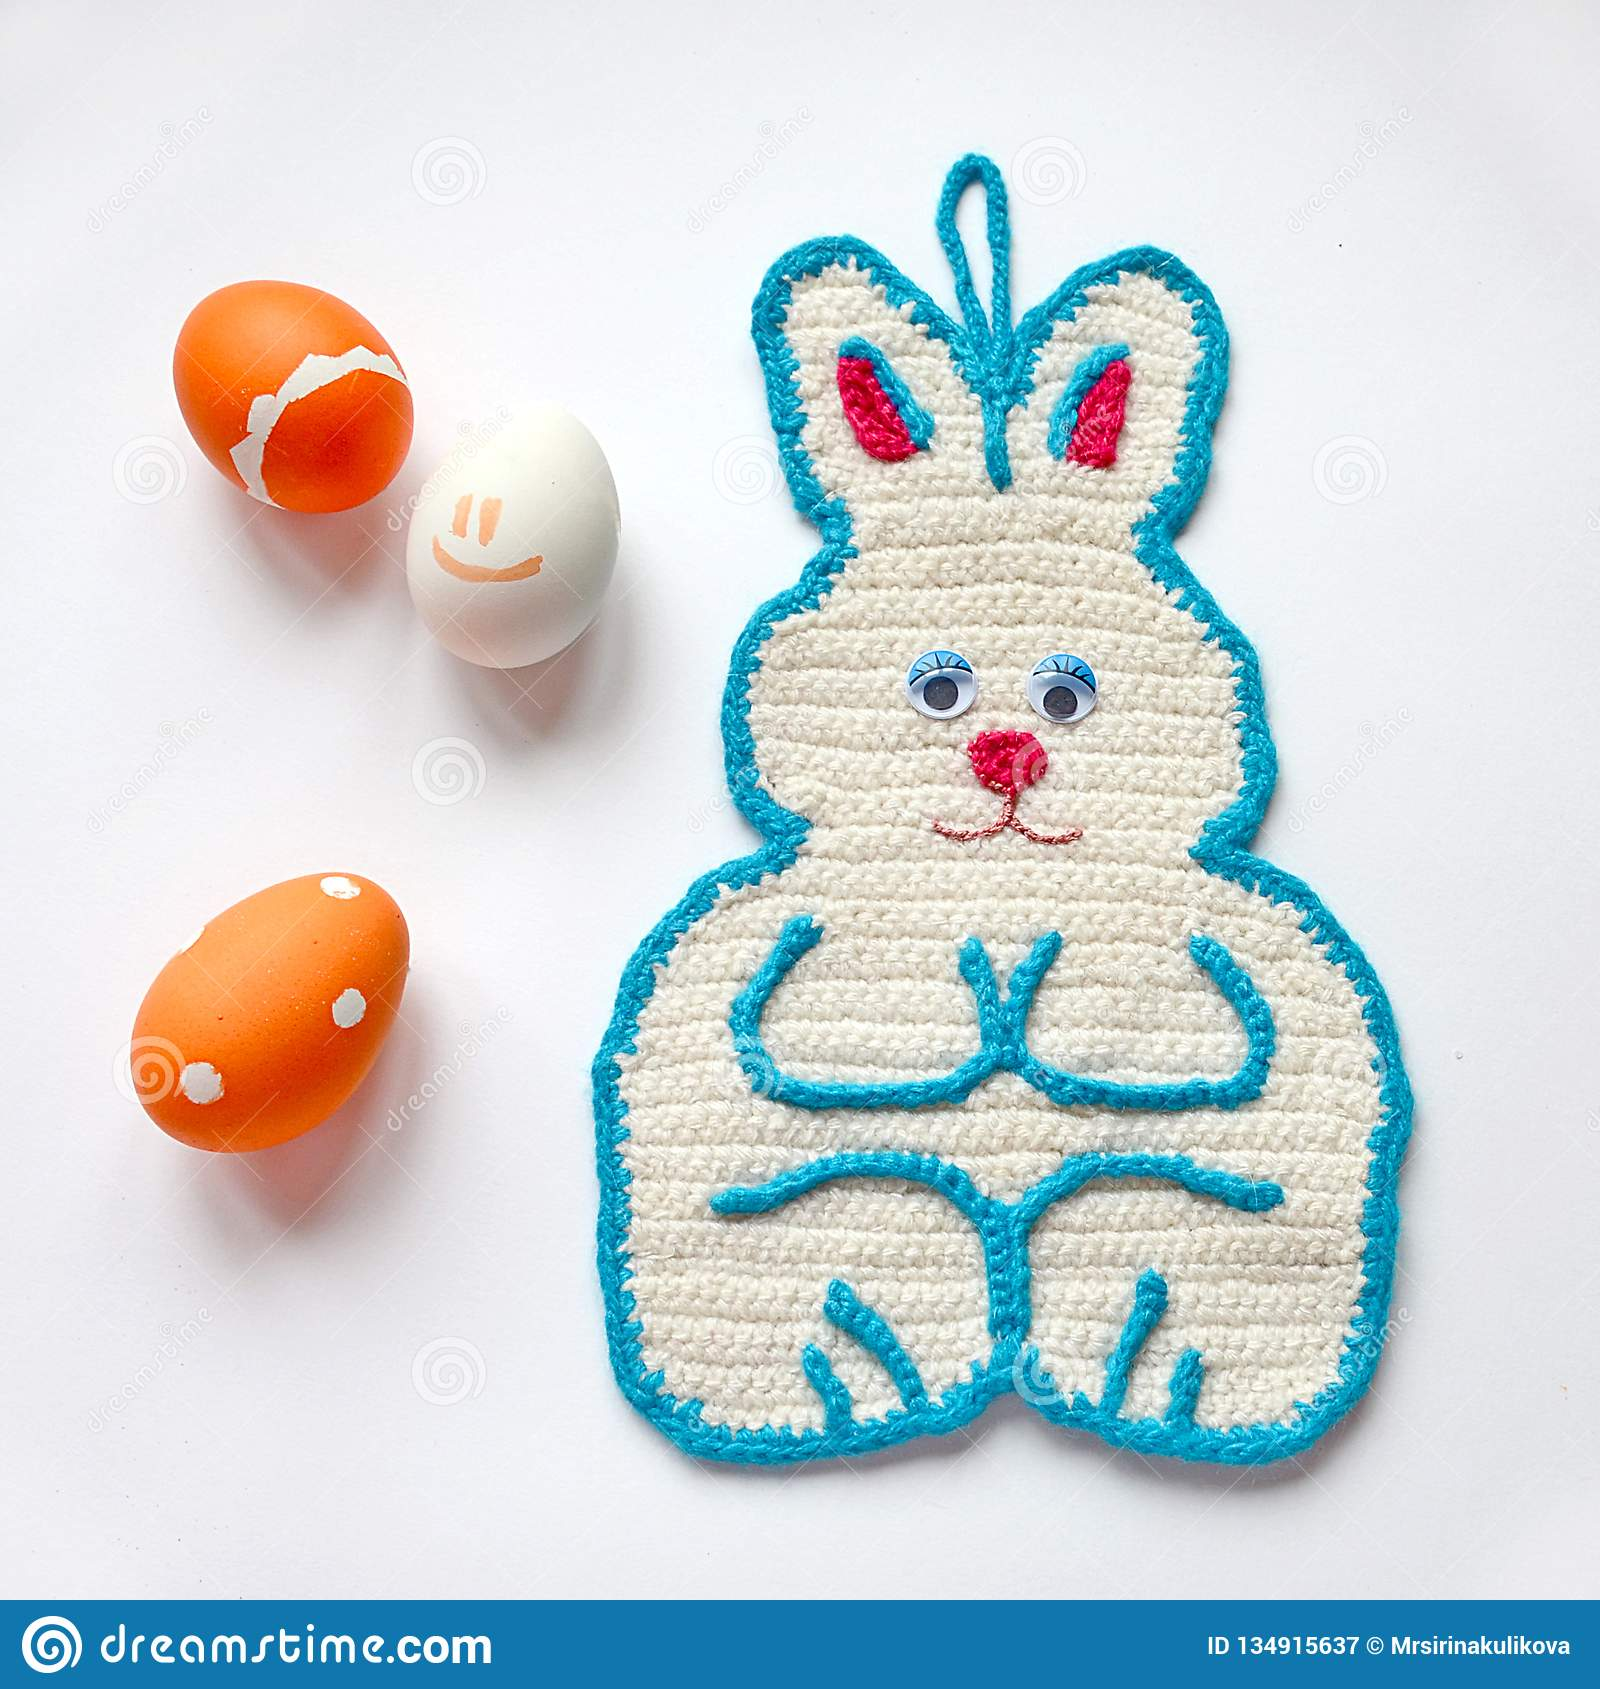 Crochet potholder Easter bunny white color with blue border and pink nose. Orange painted Easter eggs with patterns